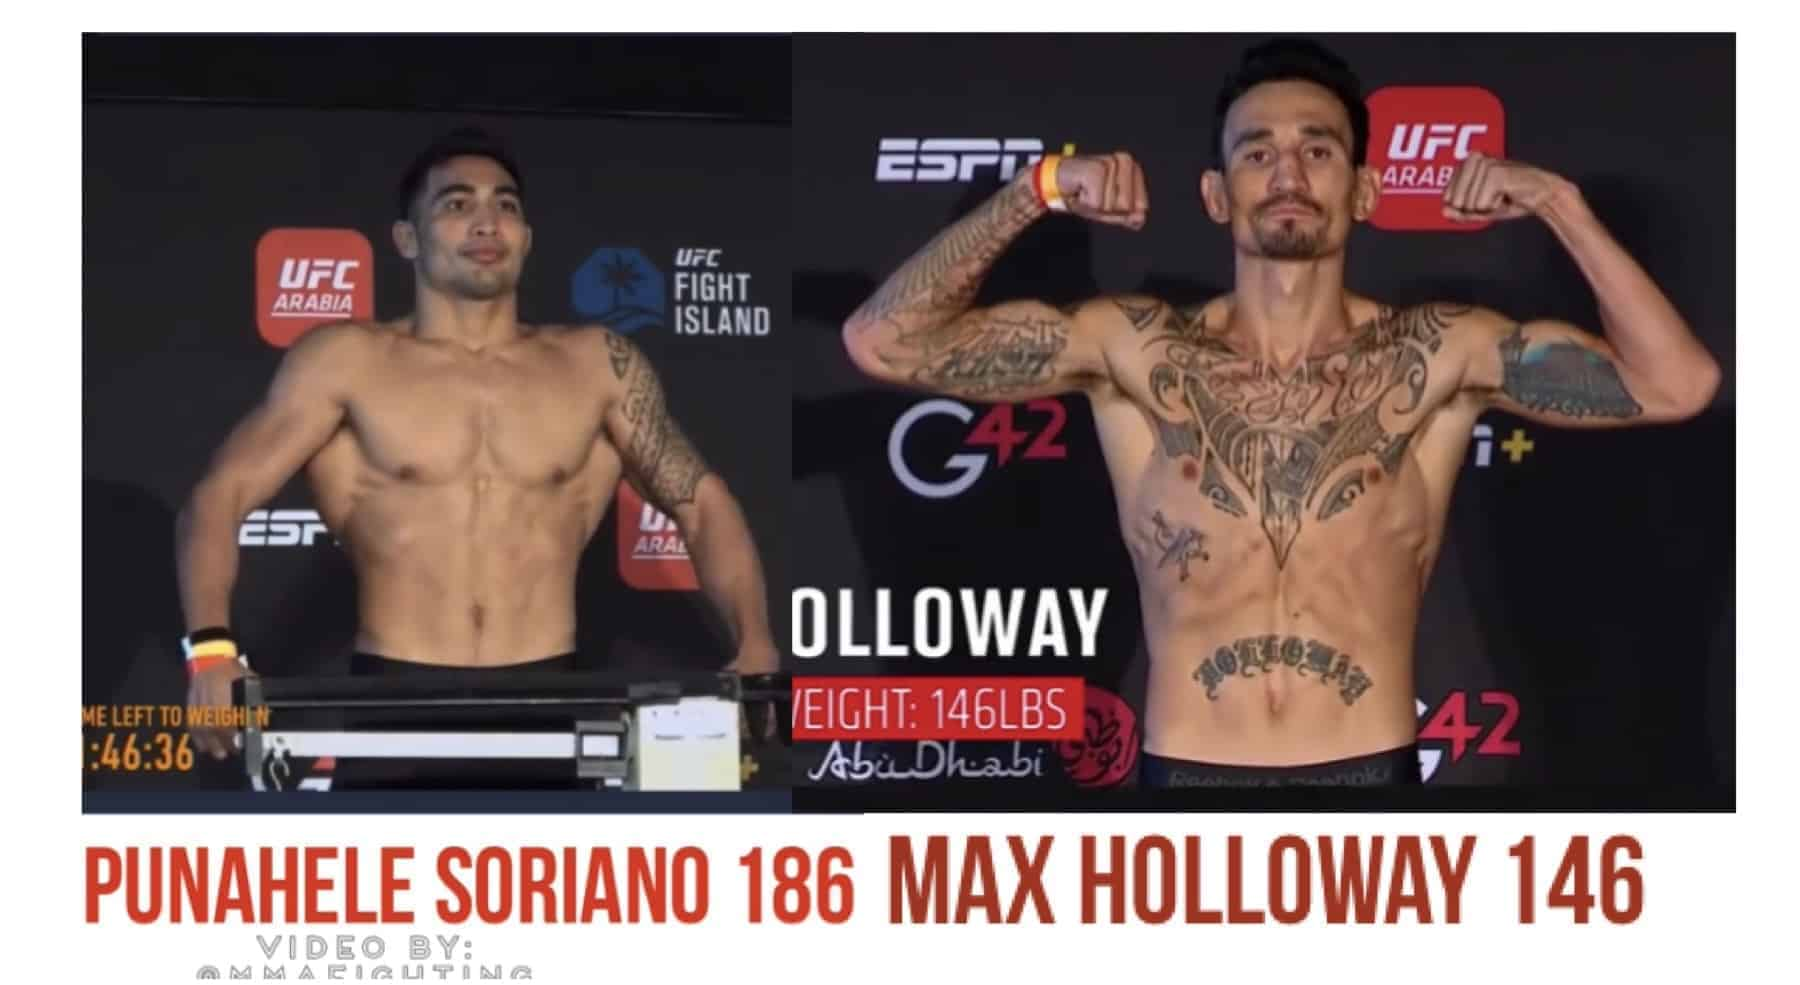 Hawaii MMA News: UFC Fight Night Max Holloway Punahele Soriano made weights